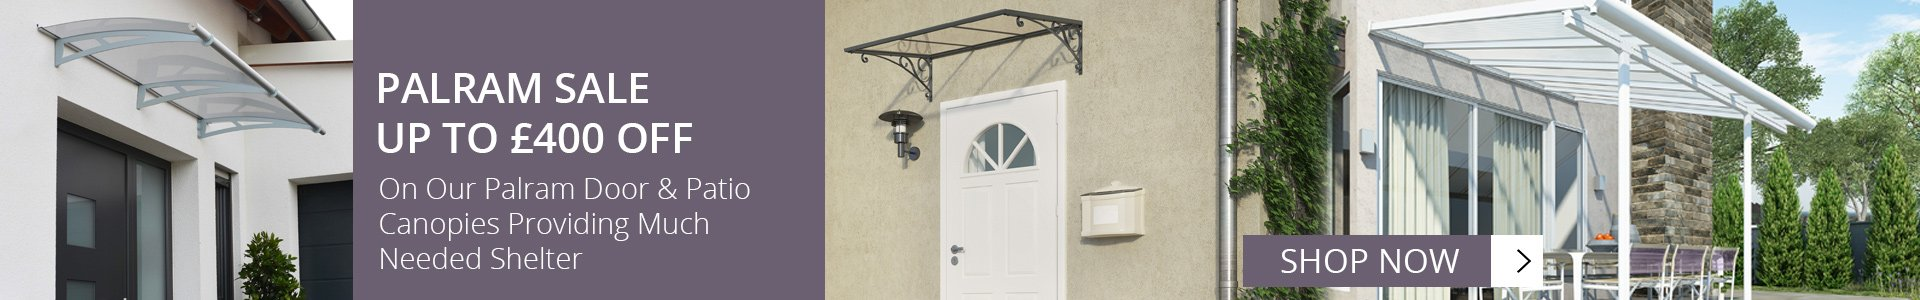 Palram Canopy Sale with up to £400 Off Door and Patio Covers